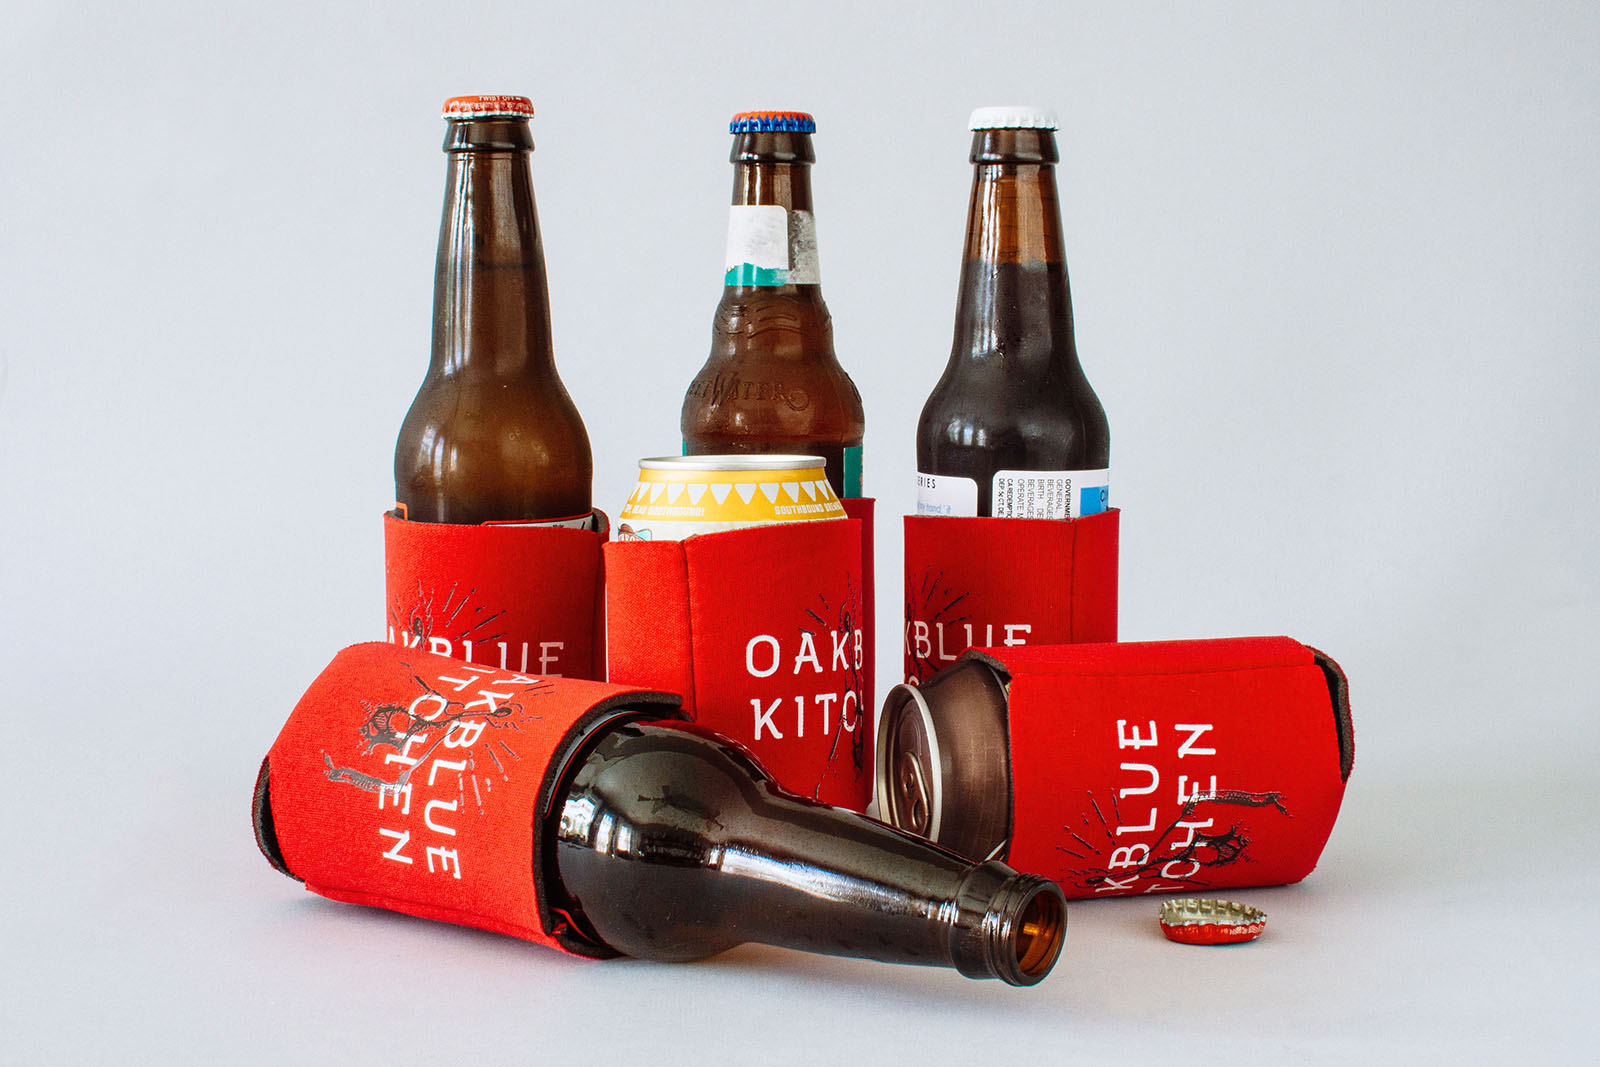 Red beer koozies with oakblue kitchen custom font and illustration.